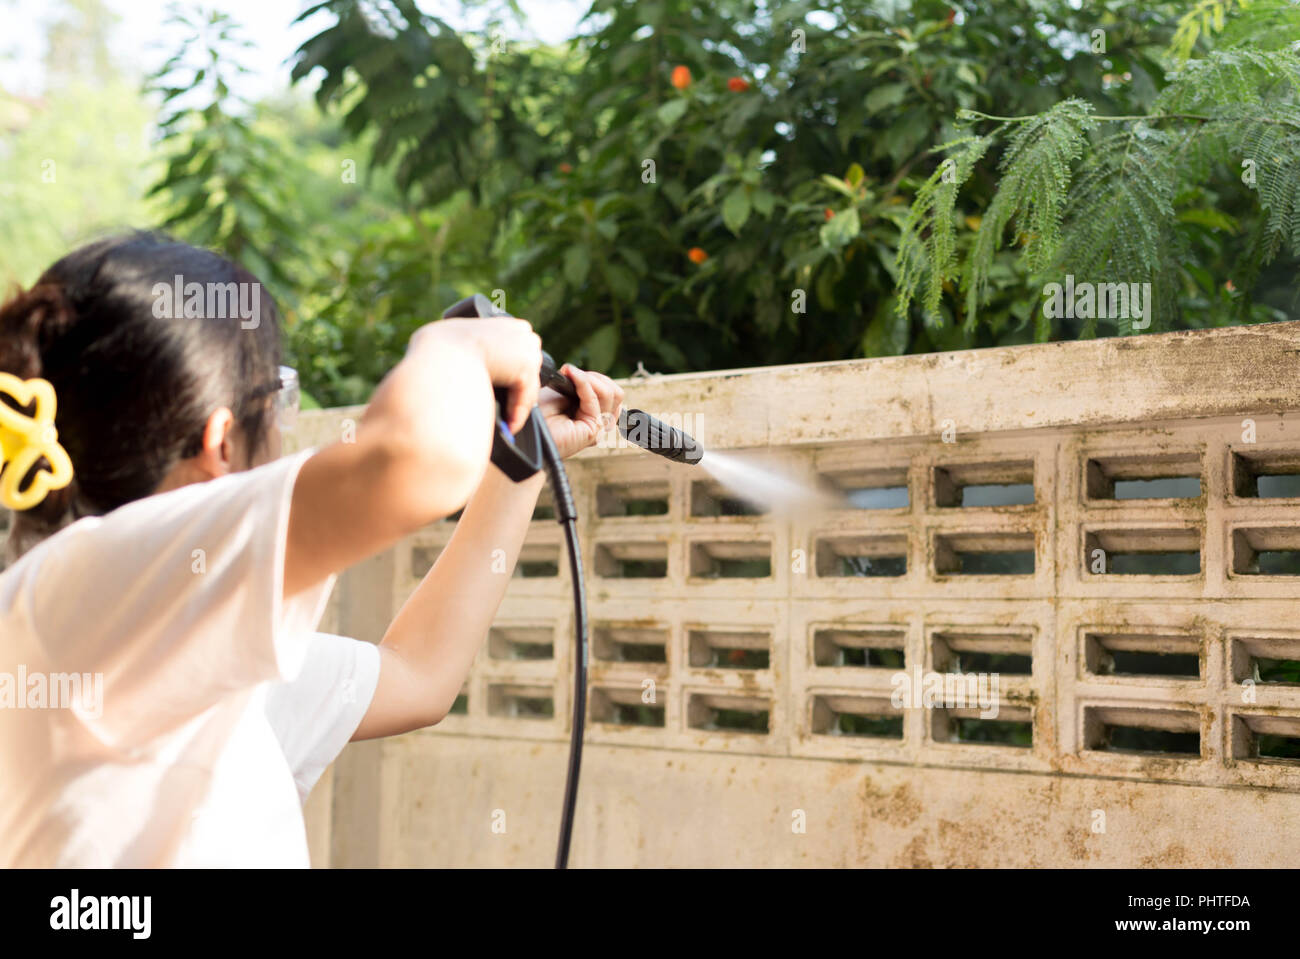 Woman cleaning  waill with high pressure water jet - Stock Image